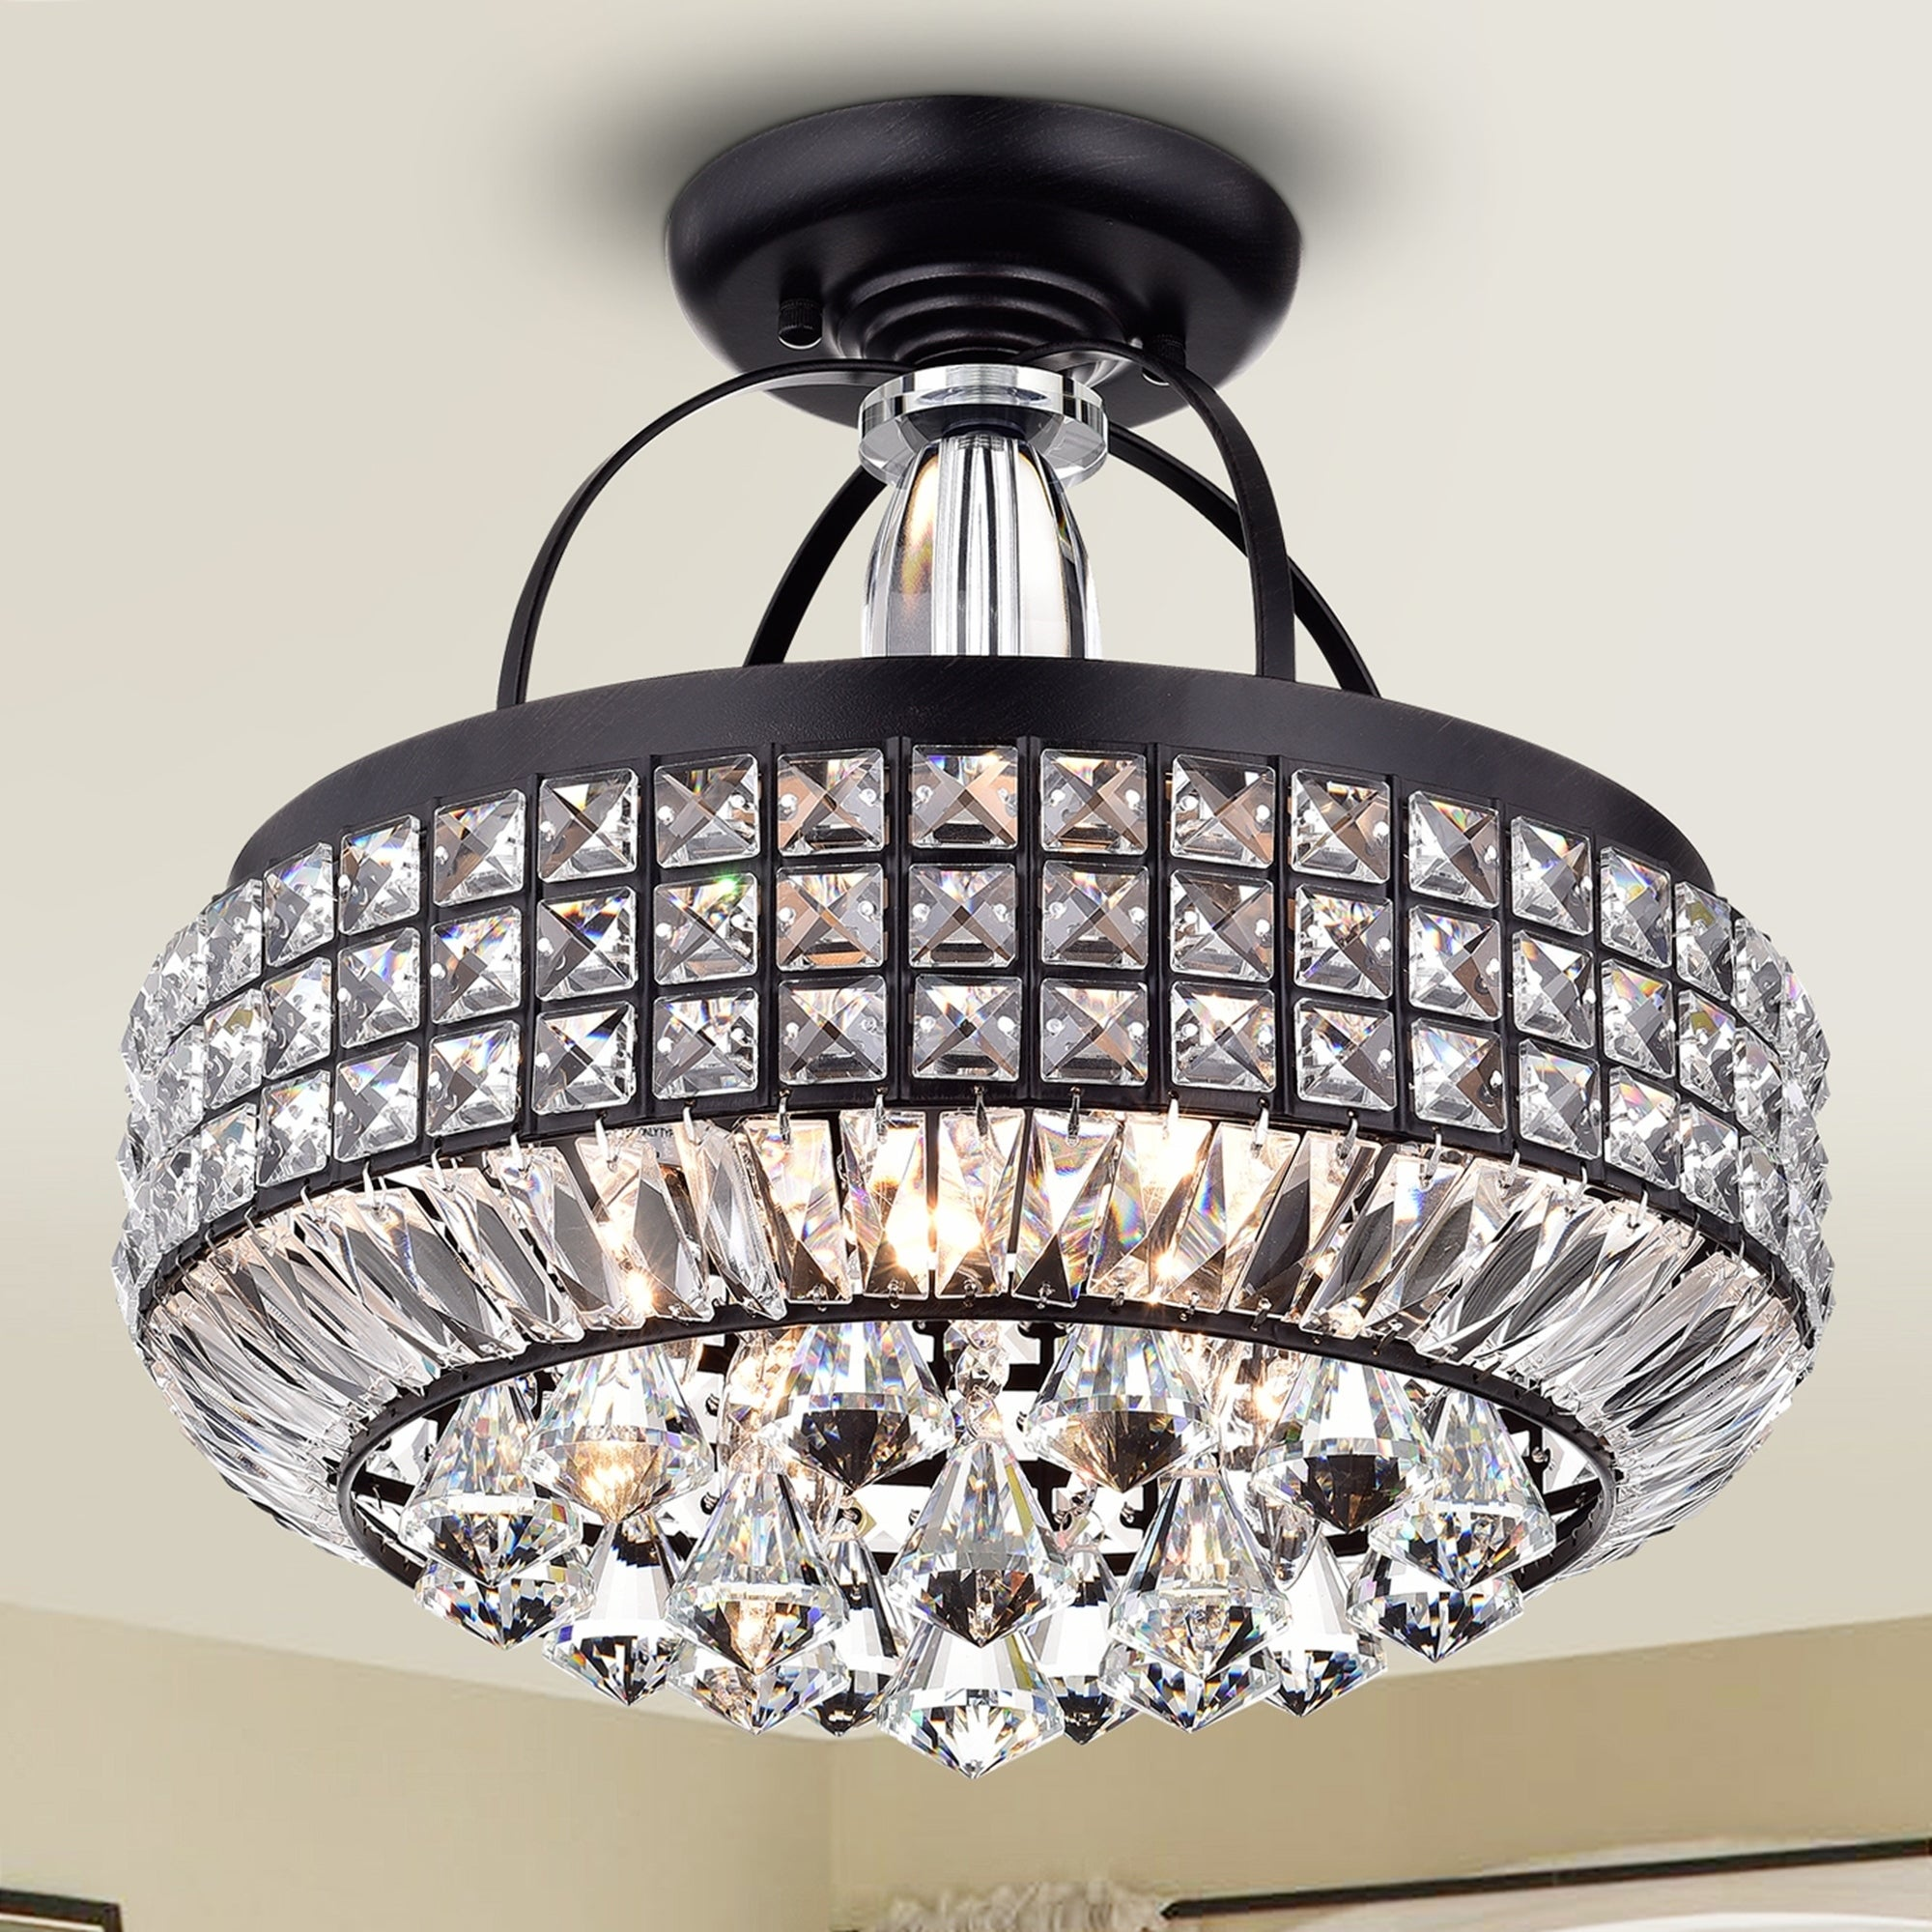 Pamarin Round Crystal Antique Black Semi Flush Mount Ceiling Light Overstock 13929400